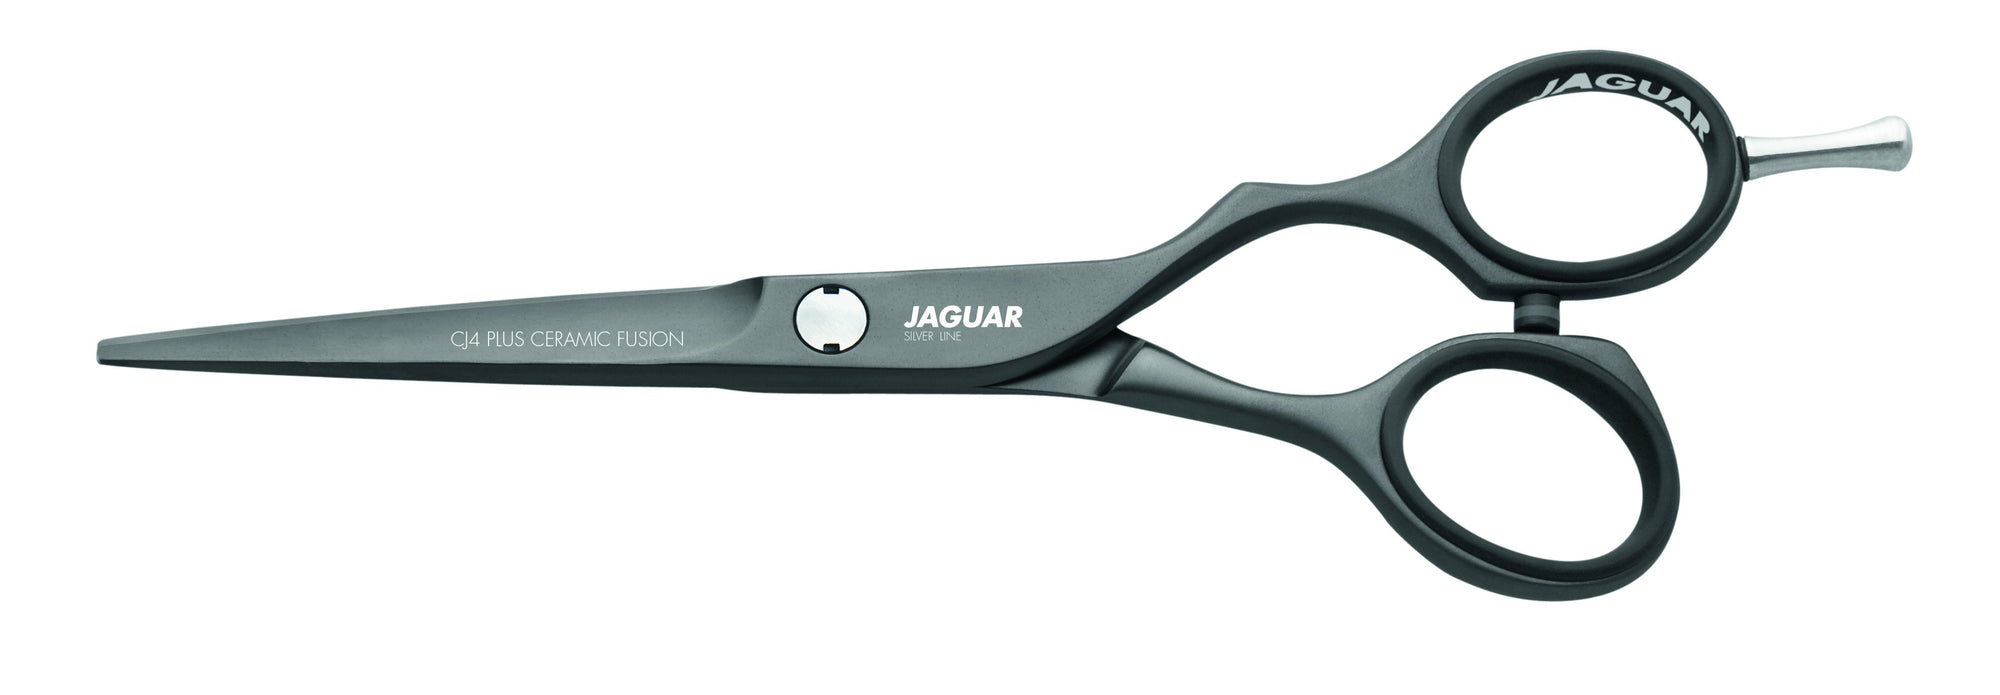 Jaguar CJ4 Plus Ceramic Fusion (4396640272467)